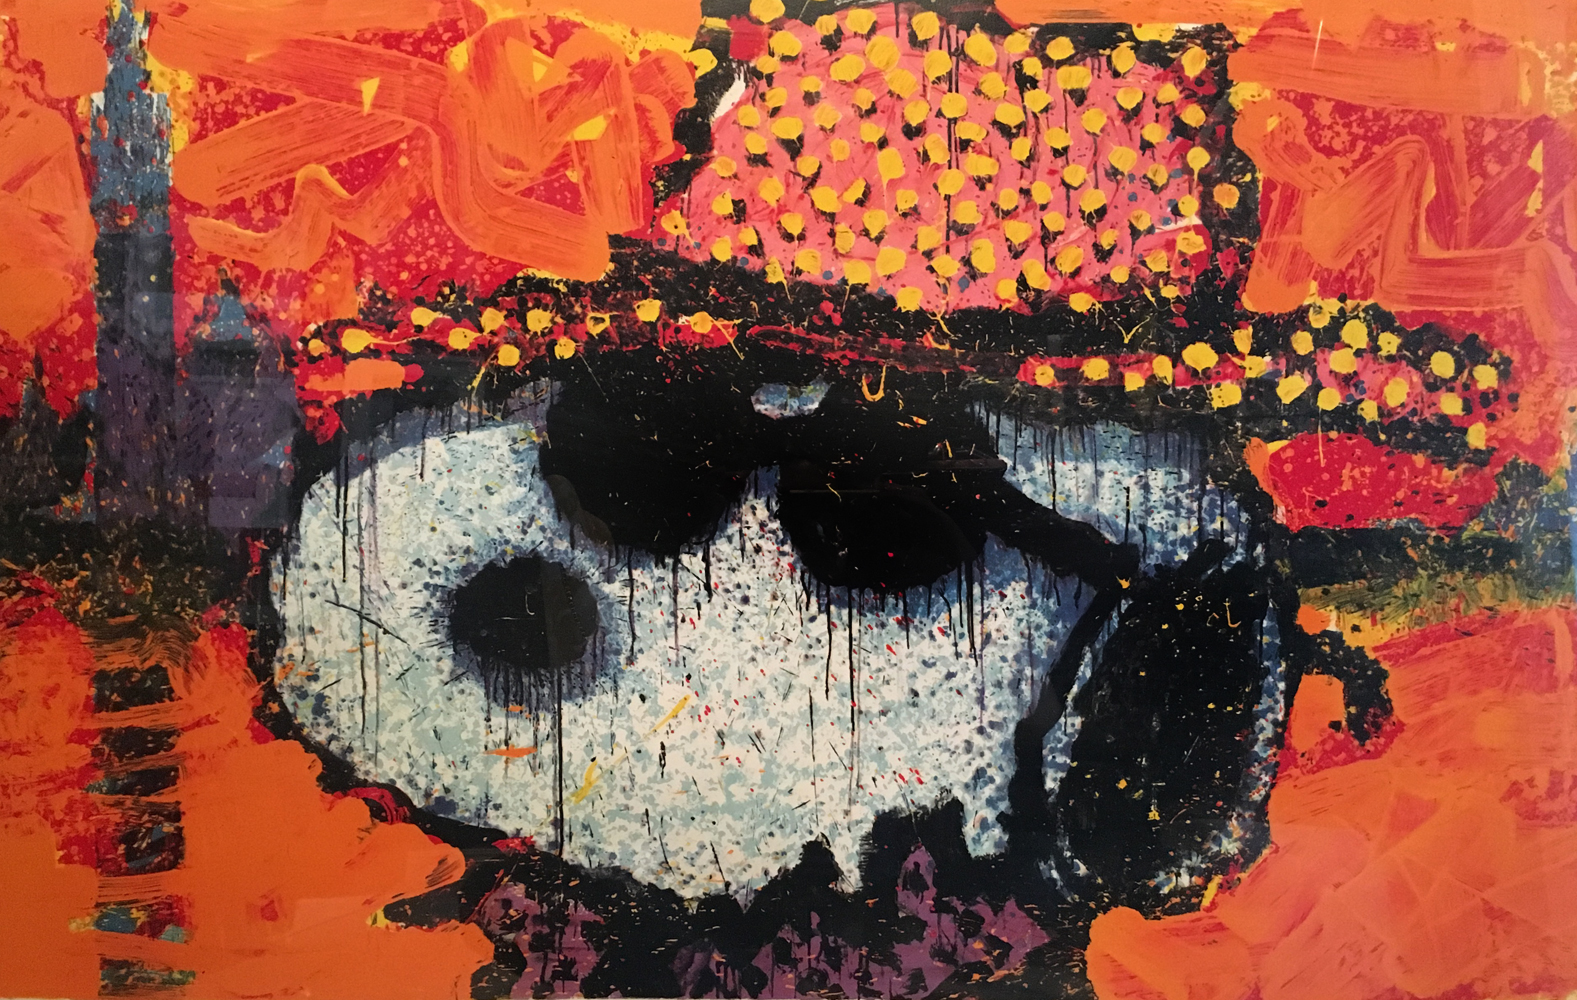 A Guy in a Sharkskin Suit Wearing a Rhinestone Hat By Twilight 2000 by Tom Everhart